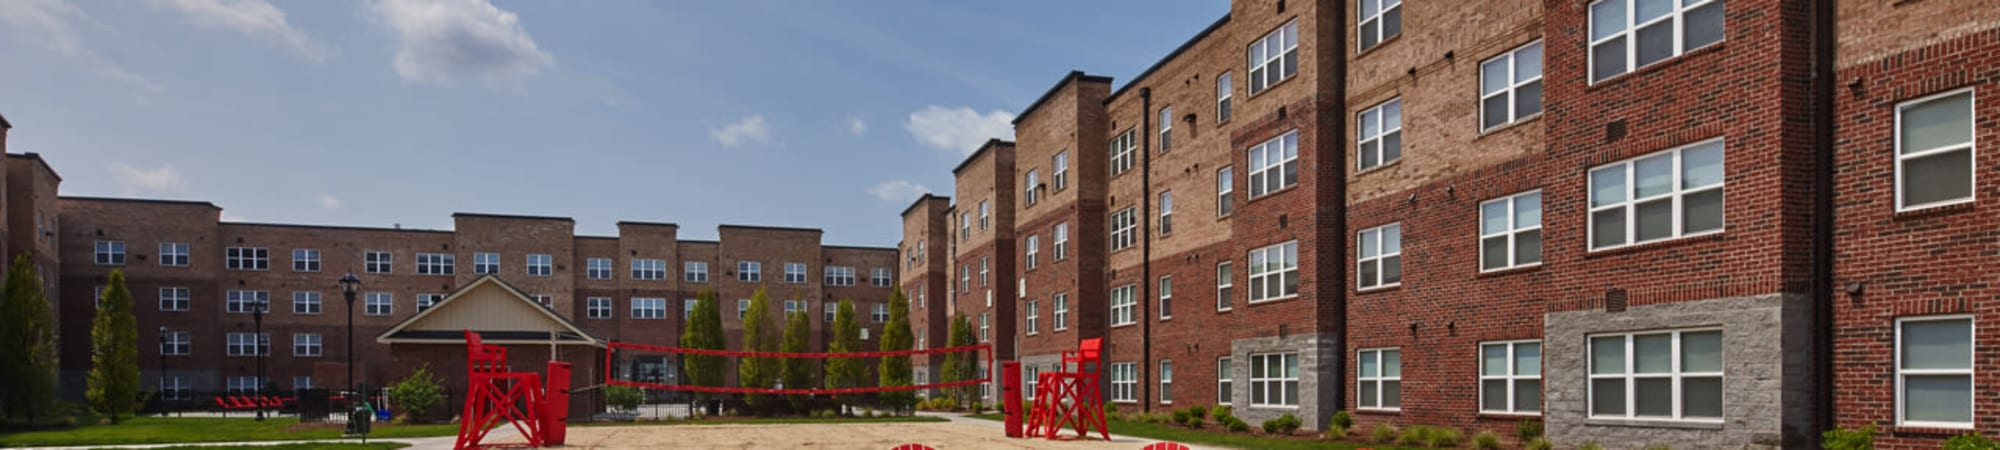 Apply to Trifecta Apartments in Louisville, Kentucky